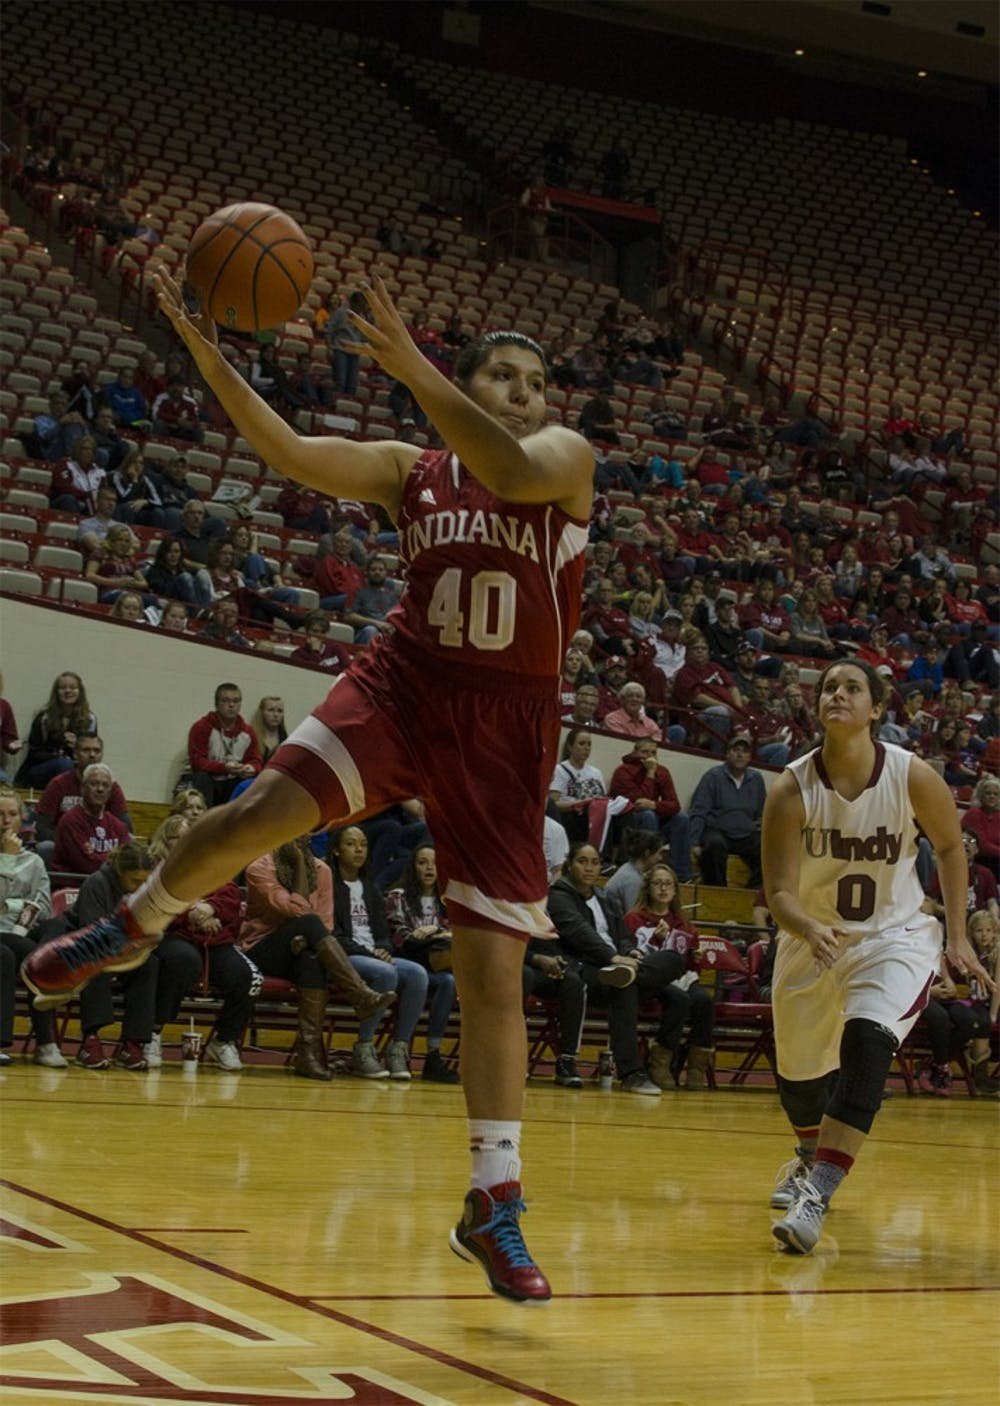 Sophomore forward Lyndsay Leikem rebounds the ball during an exhibition game against the University of Indianapolis on Nov. 9, 2014.